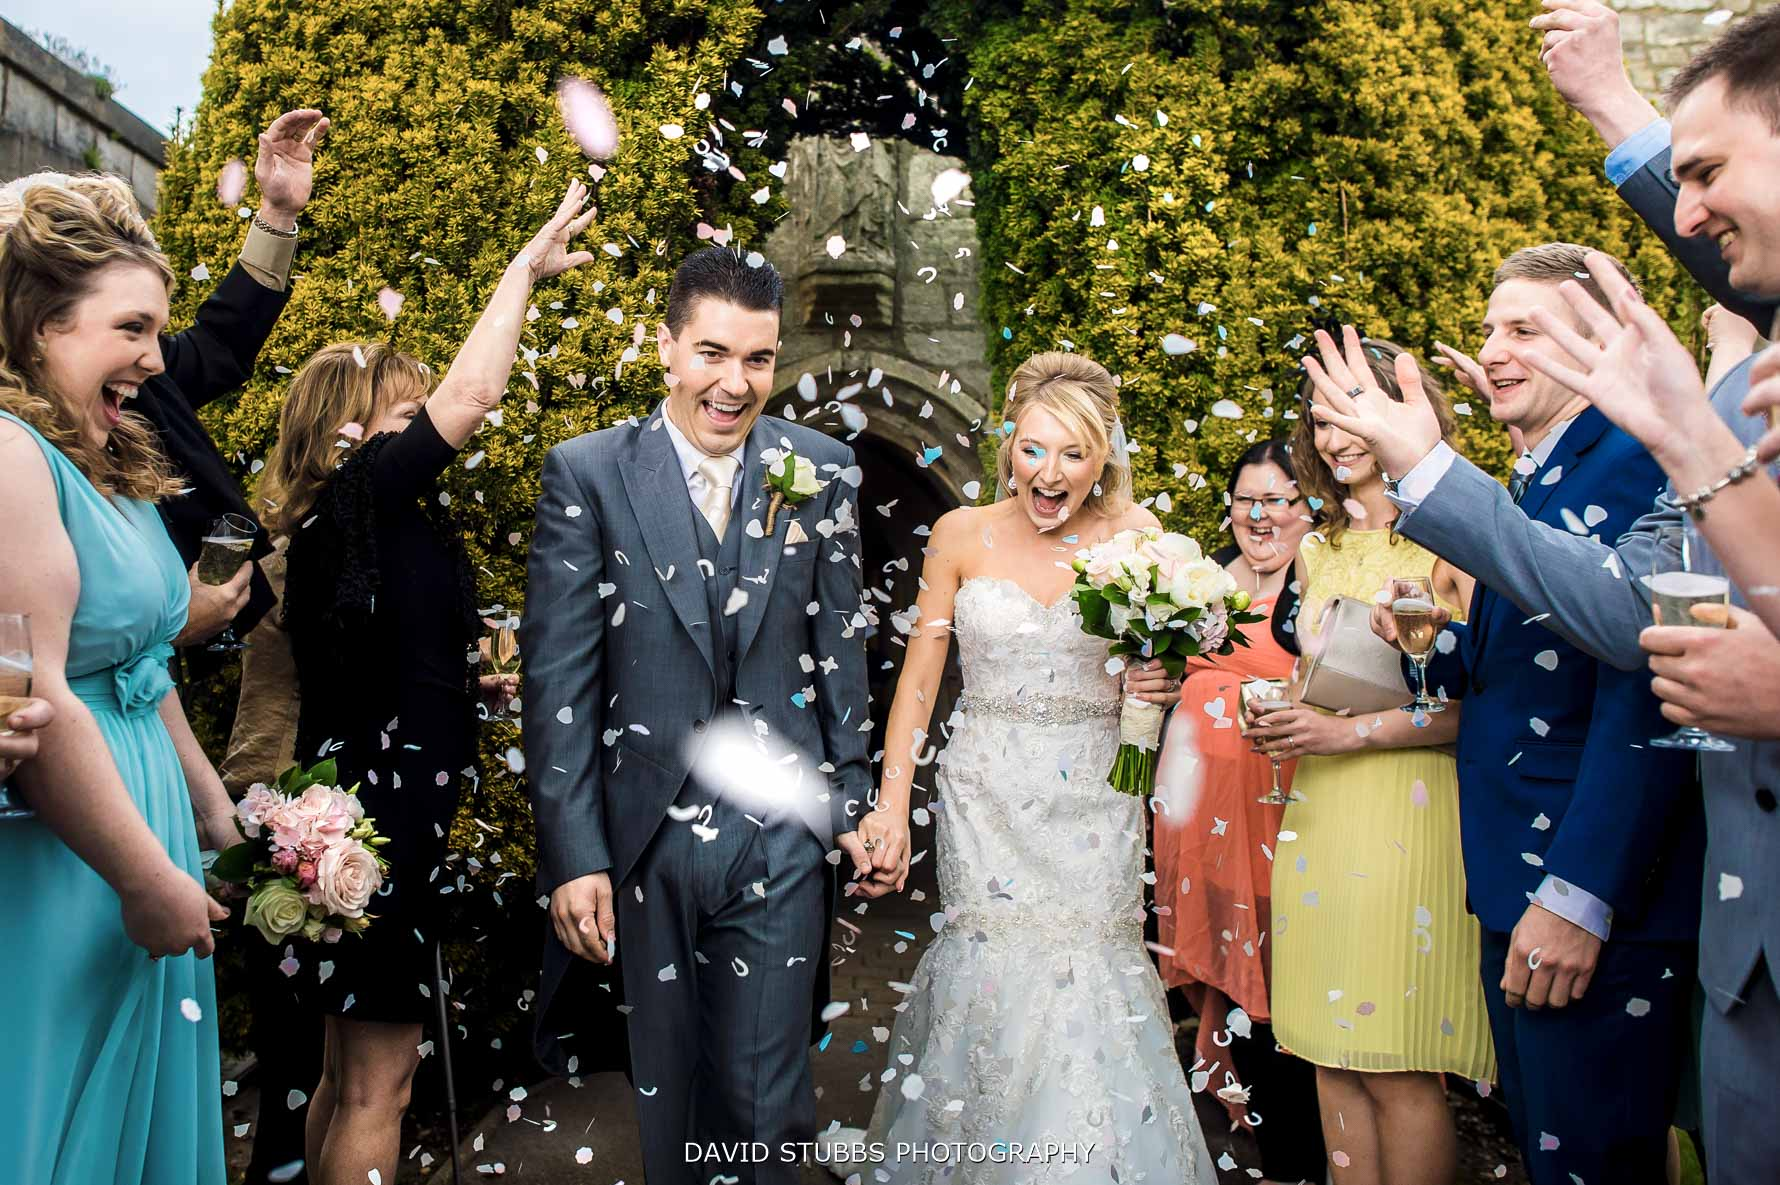 confetti throw over the newlyweds